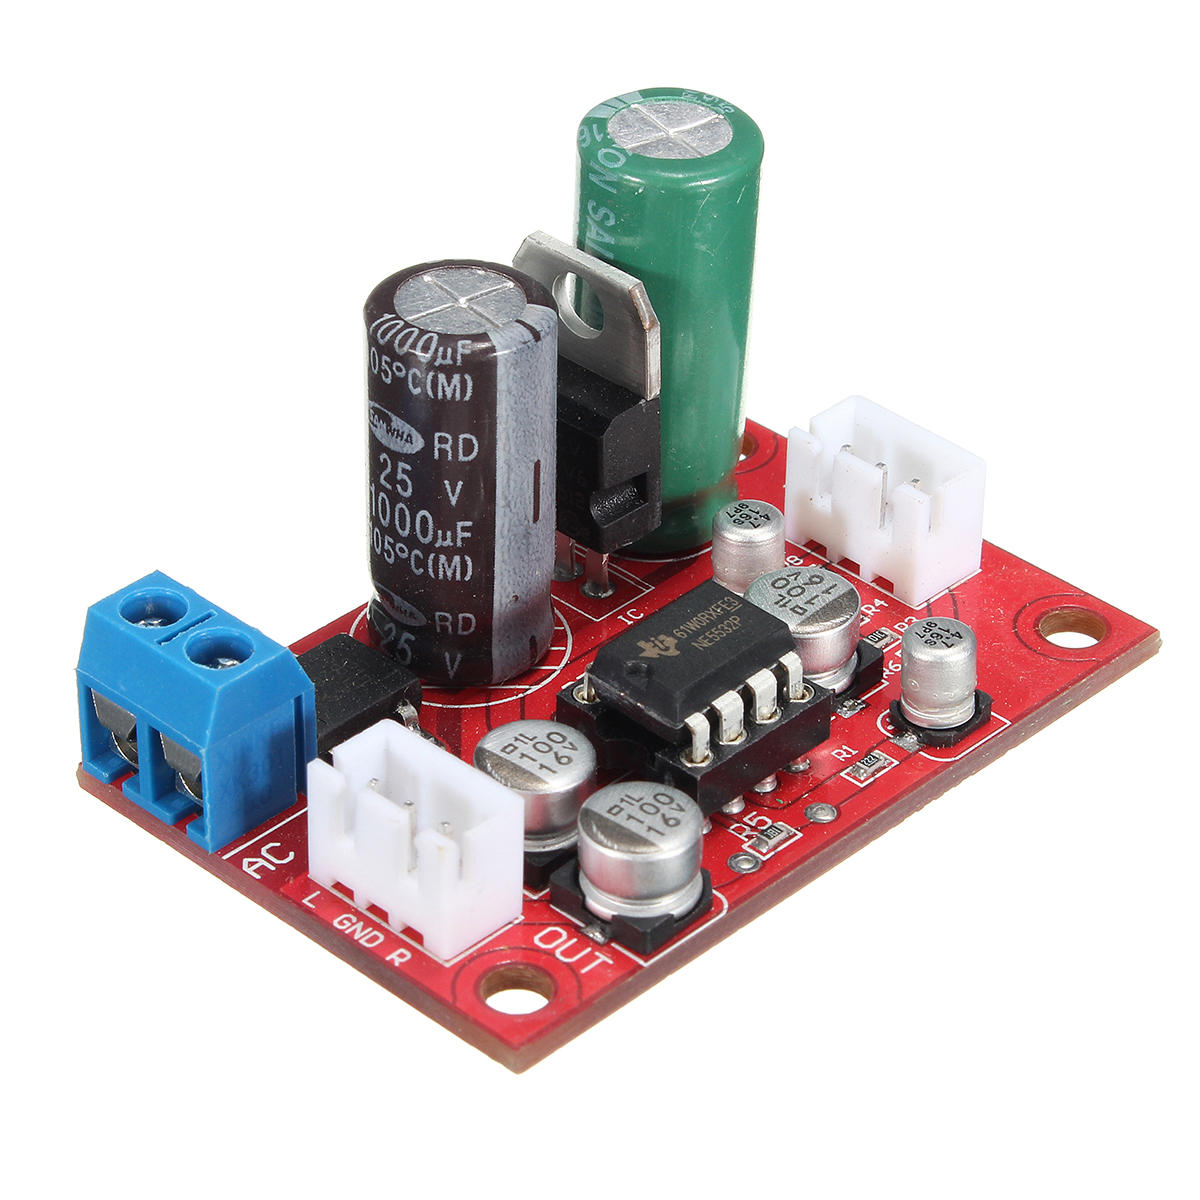 Dc 9 24v Ac 8 16v Ne5532 Audio Op Amp Microphone Preamps Pre Headphone Amplifier Circuit This Is An Exercise In